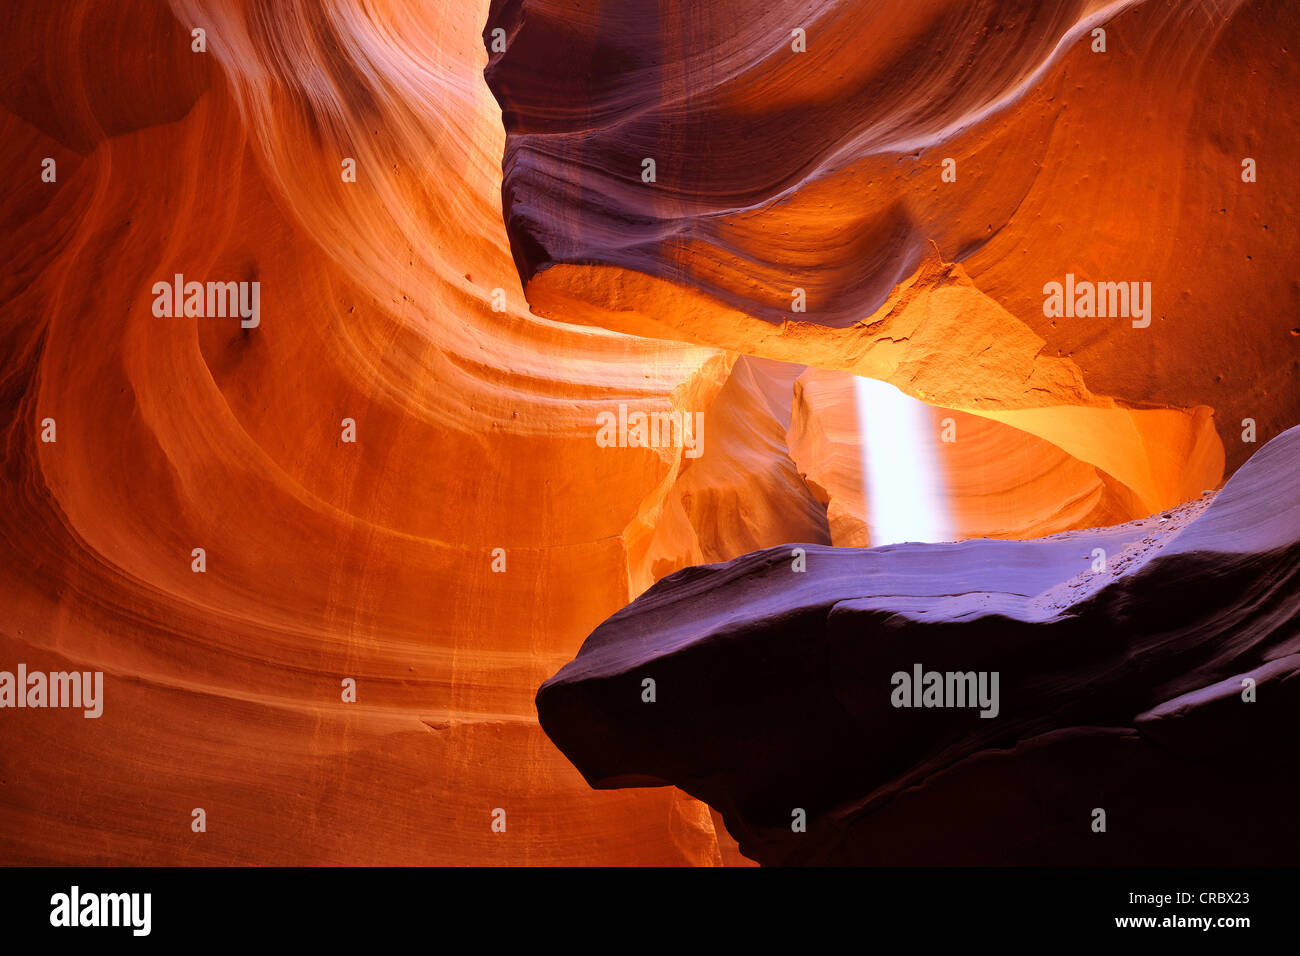 Beam of light, red sandstone of the Moenkopi formation, rock formations, colours and textures in the Upper Antelope - Stock Image